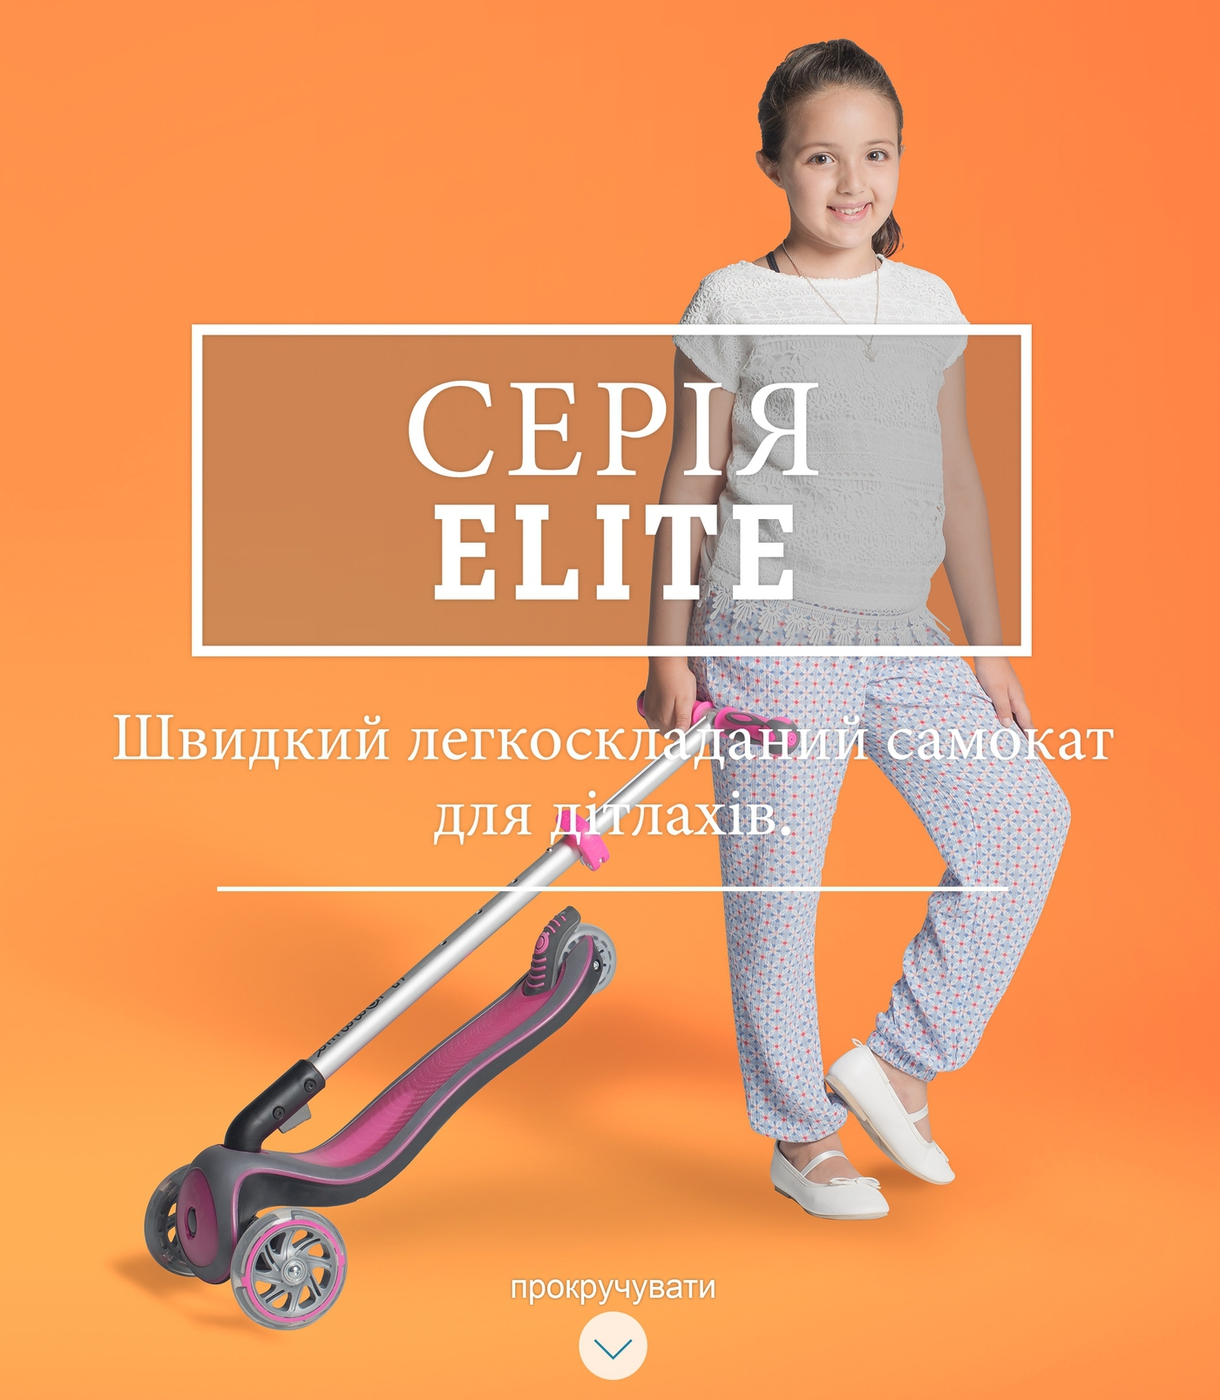 Our easy folding scooter with light-wheels for kids.